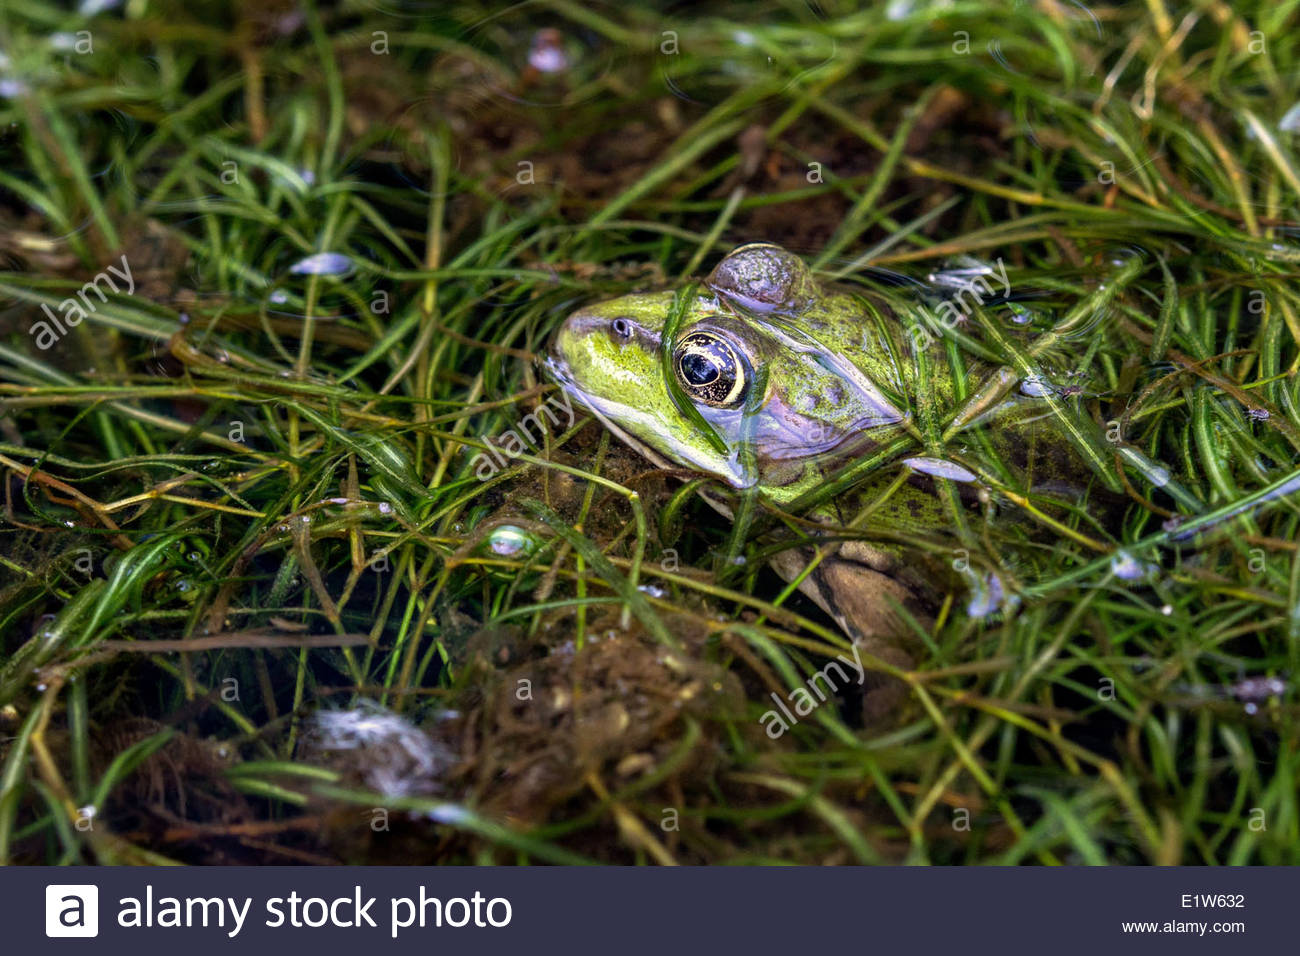 Pelophylax kl. esculentus known as the edible frog, common European frog, common water frog or green frog - Stock Image